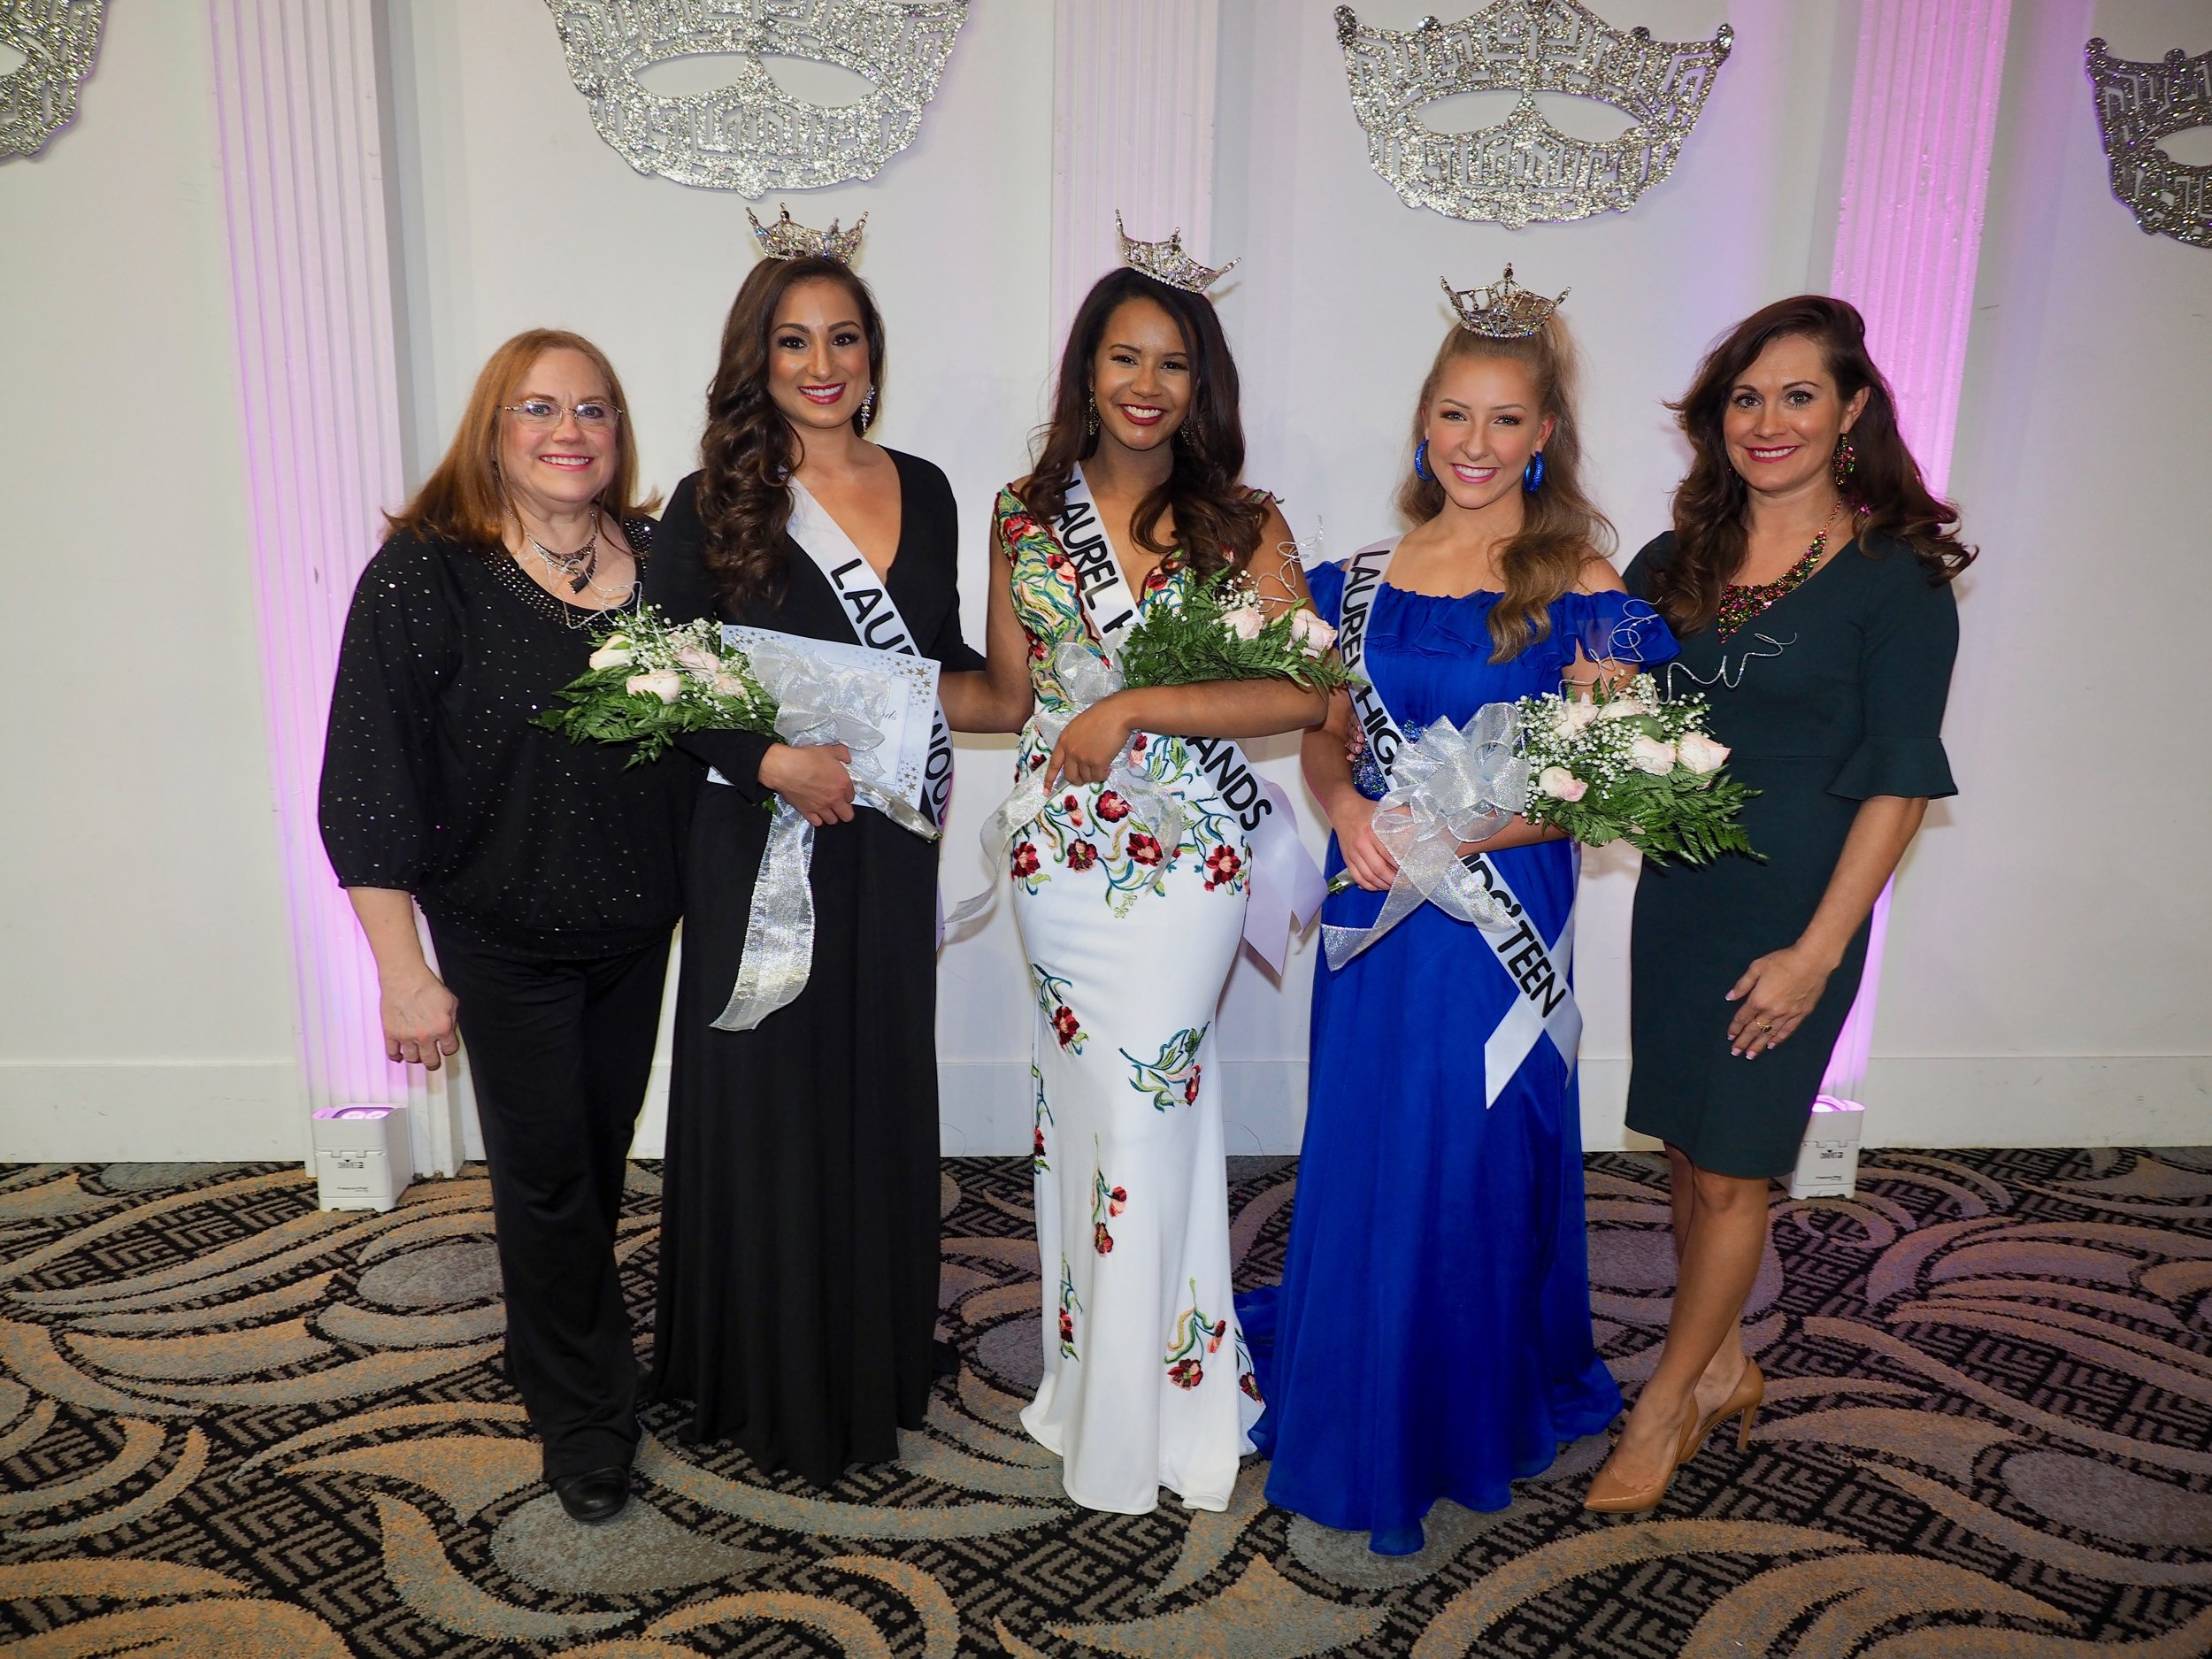 Former Local Executive Director Kathy Smartnick, now Miss Pennsylvania's Outstanding Teen Executive Director.    Meghan Sinisi-Miss Laurelwood 2019, Theresa Dickerson-Miss Laurel Highlands, Bryn Patton-Miss Laurel Highlands' Outstanding Teen    Executive Director Melanie Smartnick